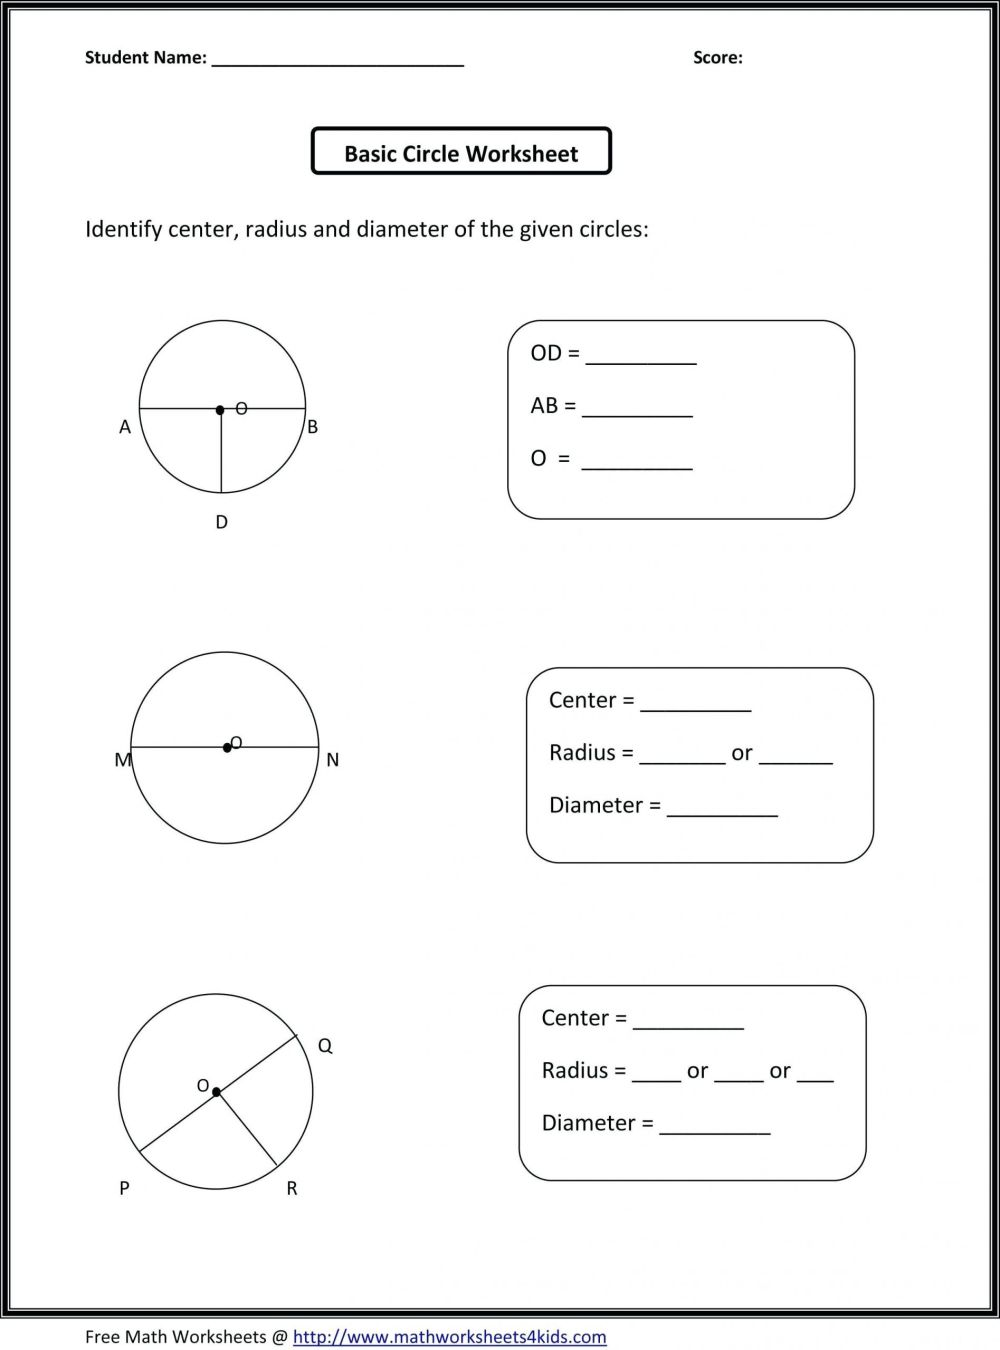 medium resolution of 3 Free Math Worksheets Second Grade 2 Subtraction Subtracting 1 Digit From  2 Digit with Regrouping - apocalomegaproductions.com